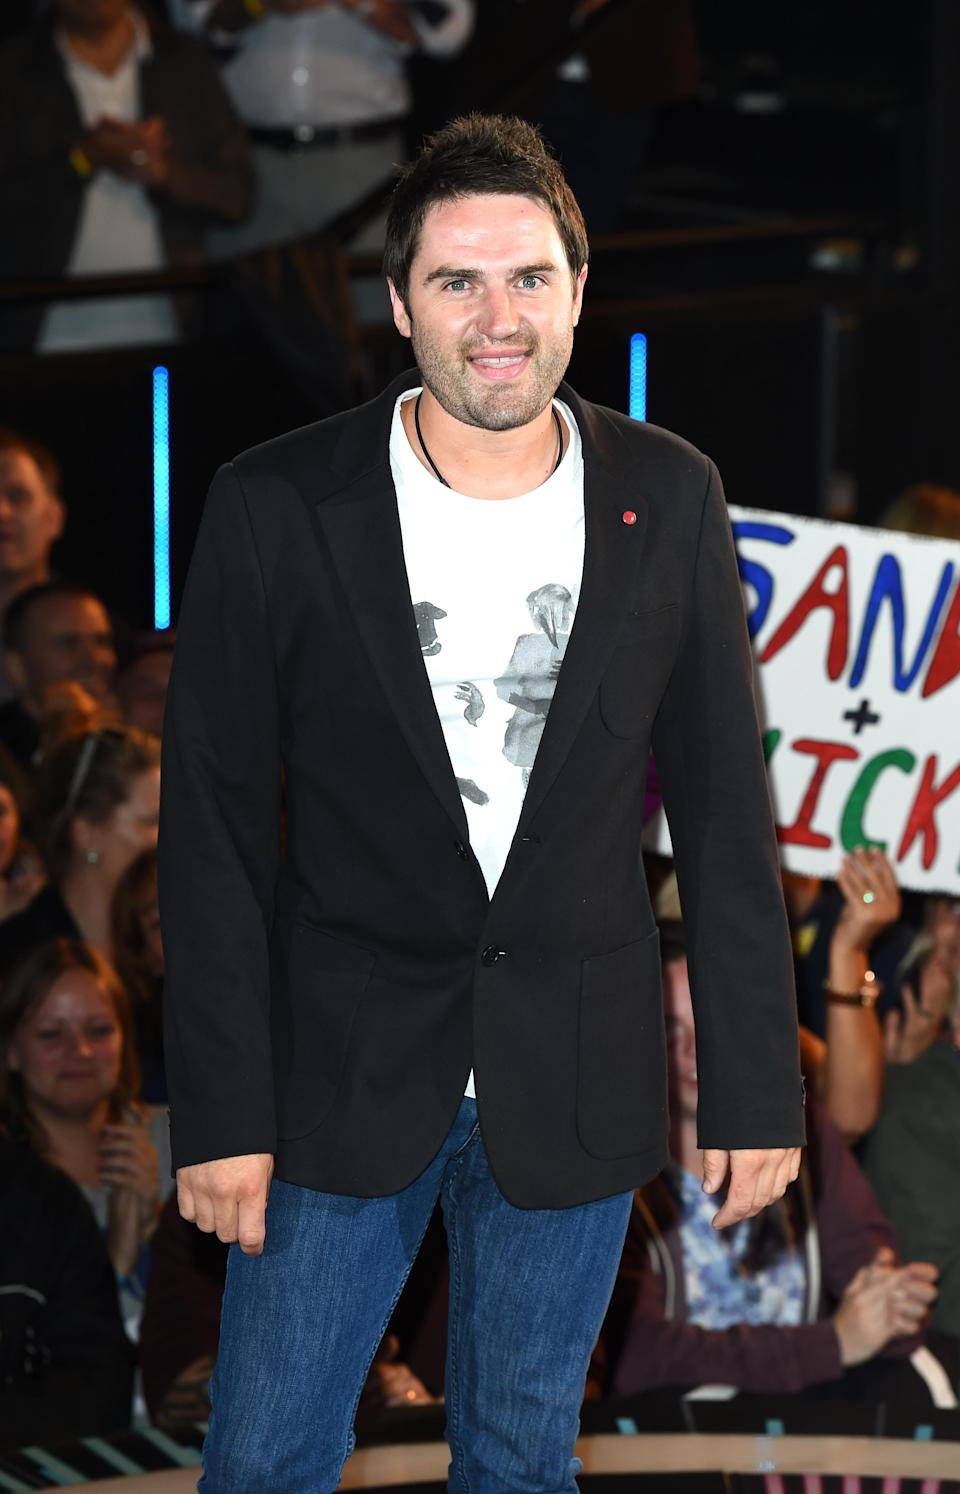 George Gilbey arriving at the Celebrity Big Brother house at Elstree studios in London in 2014. (PA)